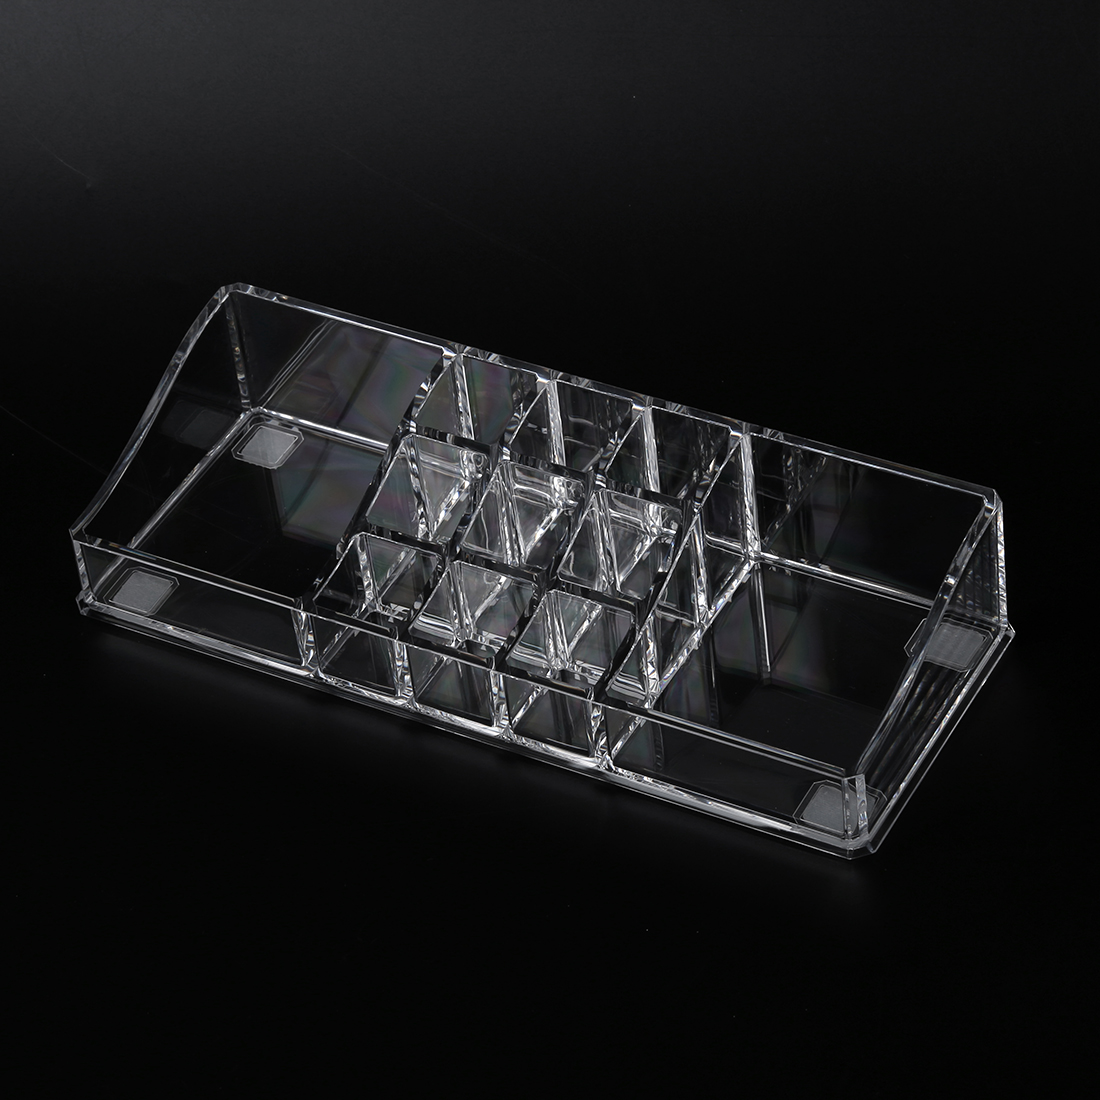 acrylic cosmetic organiser lipstick brush holder makeup storage case dt ebay. Black Bedroom Furniture Sets. Home Design Ideas